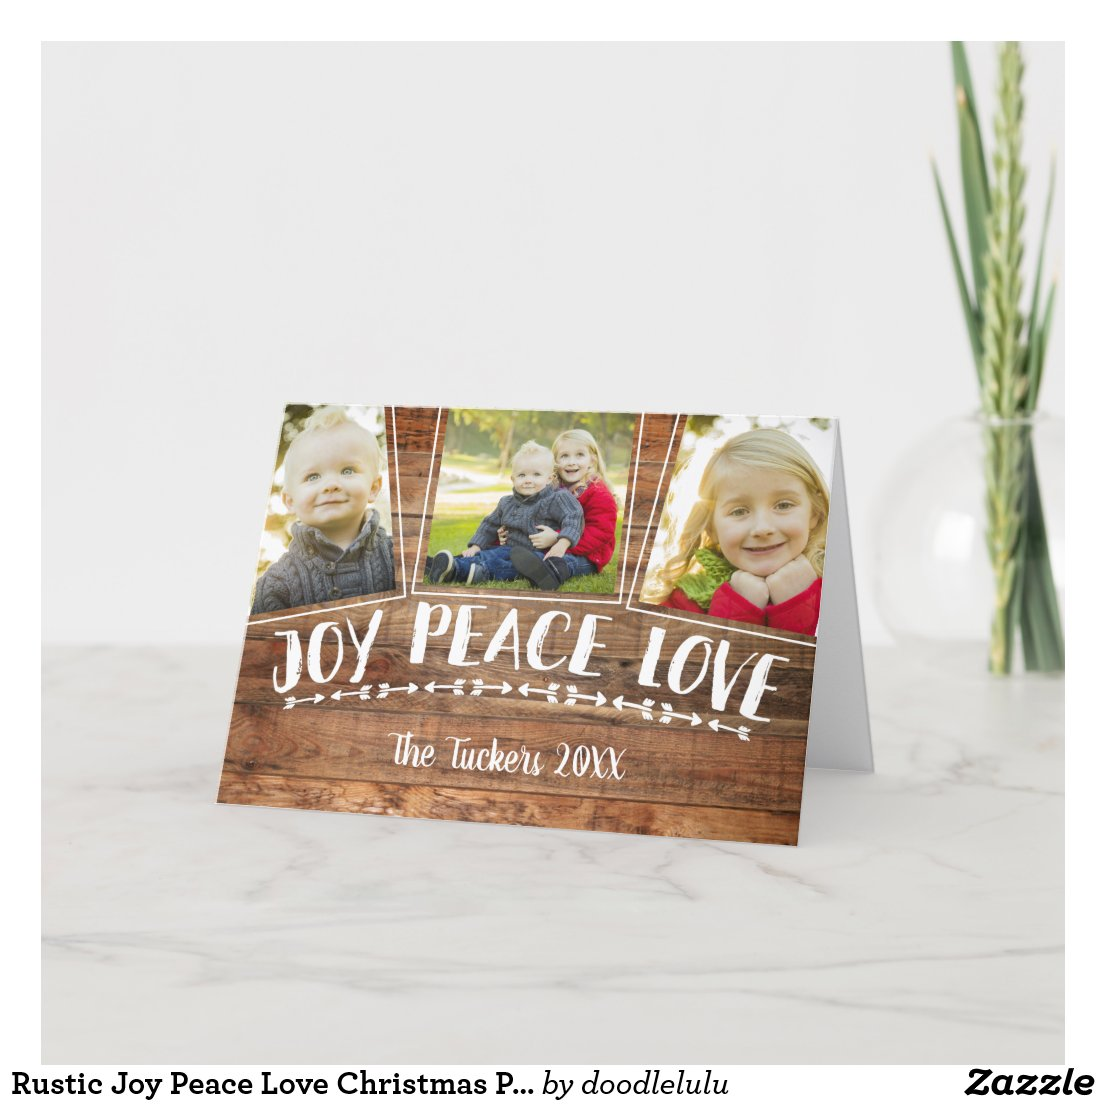 Rustic Joy Peace Love Christmas Photo Collage Holiday Card